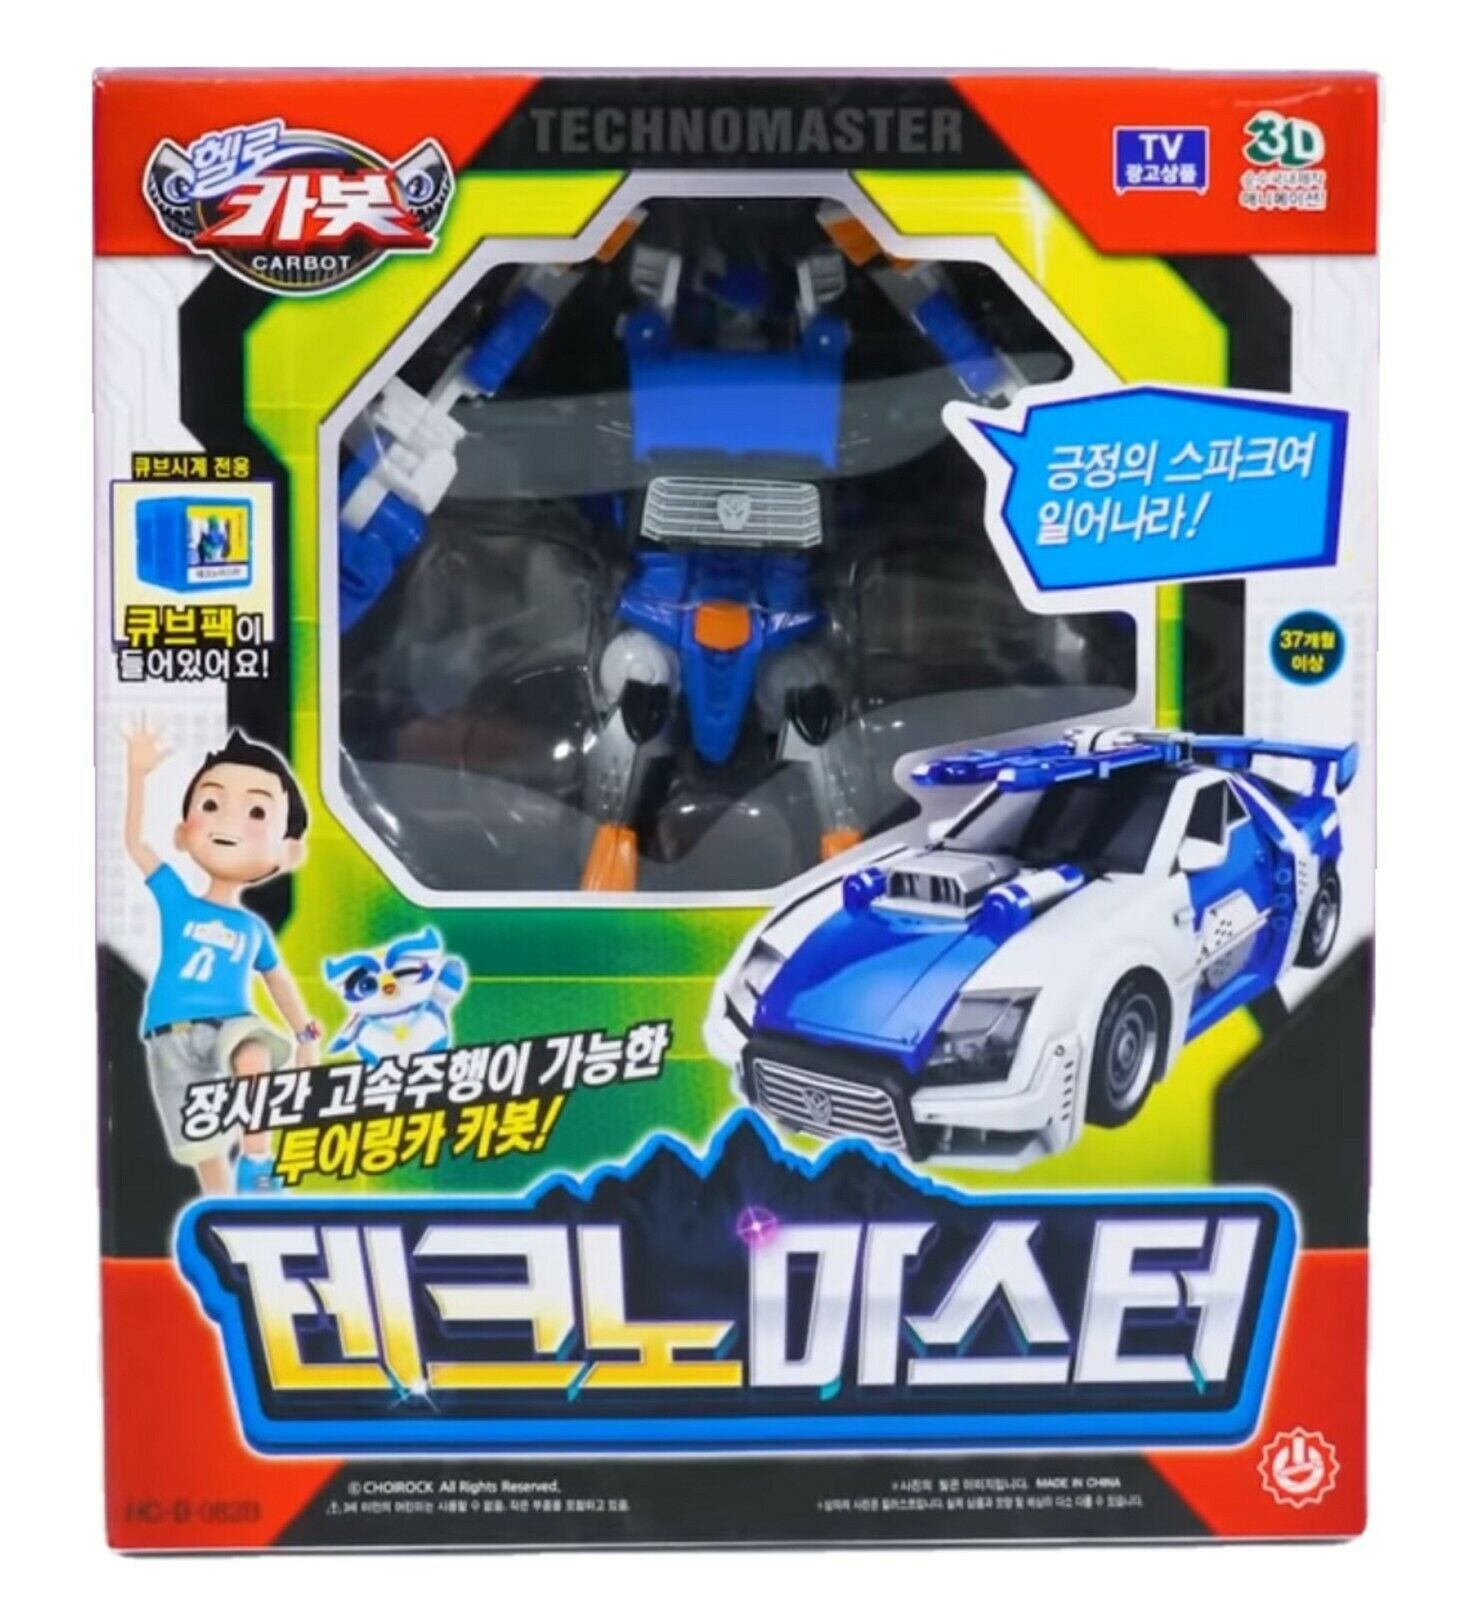 Hello Carbot Techno Master Transformation Action Figure Toy Vehicle Robot